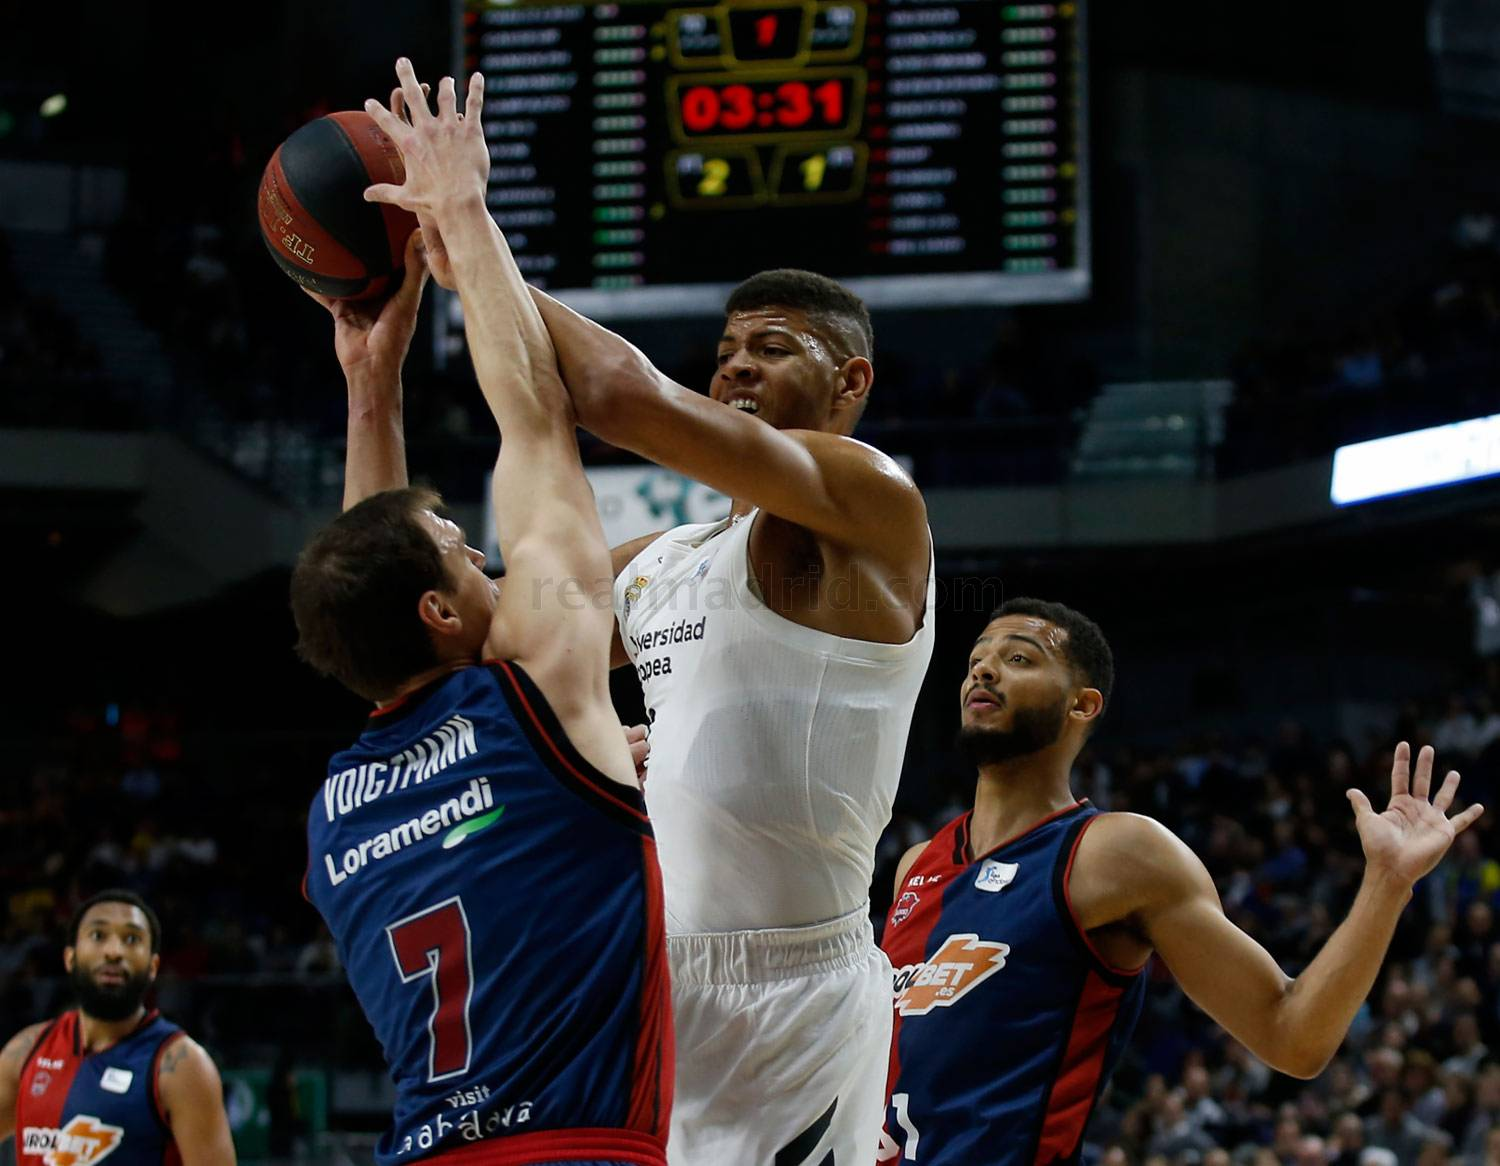 Real Madrid - Real Madrid - Kirolbet Baskonia - 10-02-2019